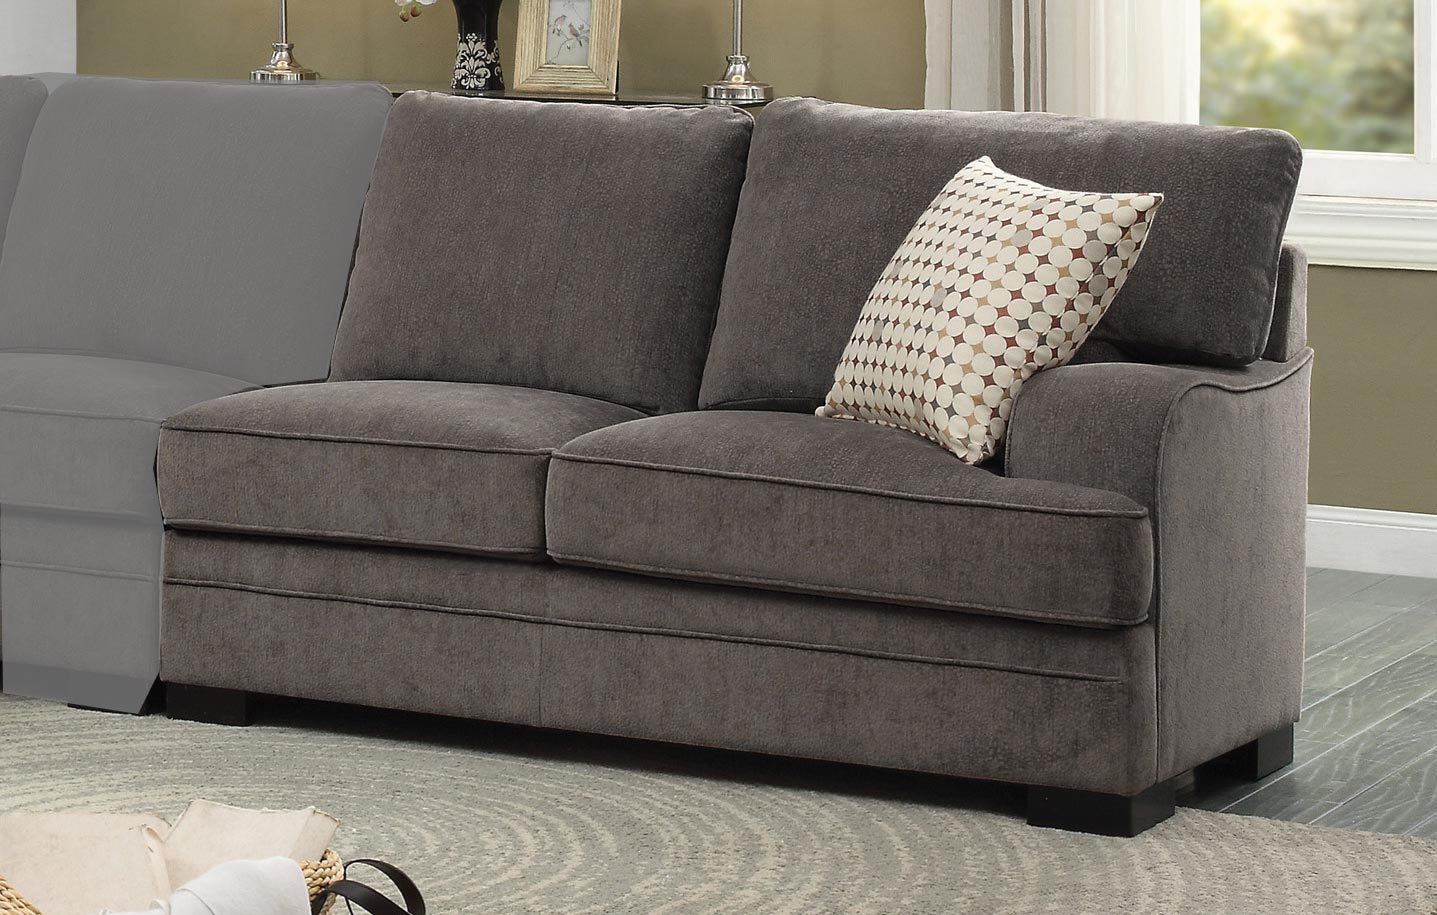 Homelegance Alamosa Right Side 2-Seater - Chenille - Brown